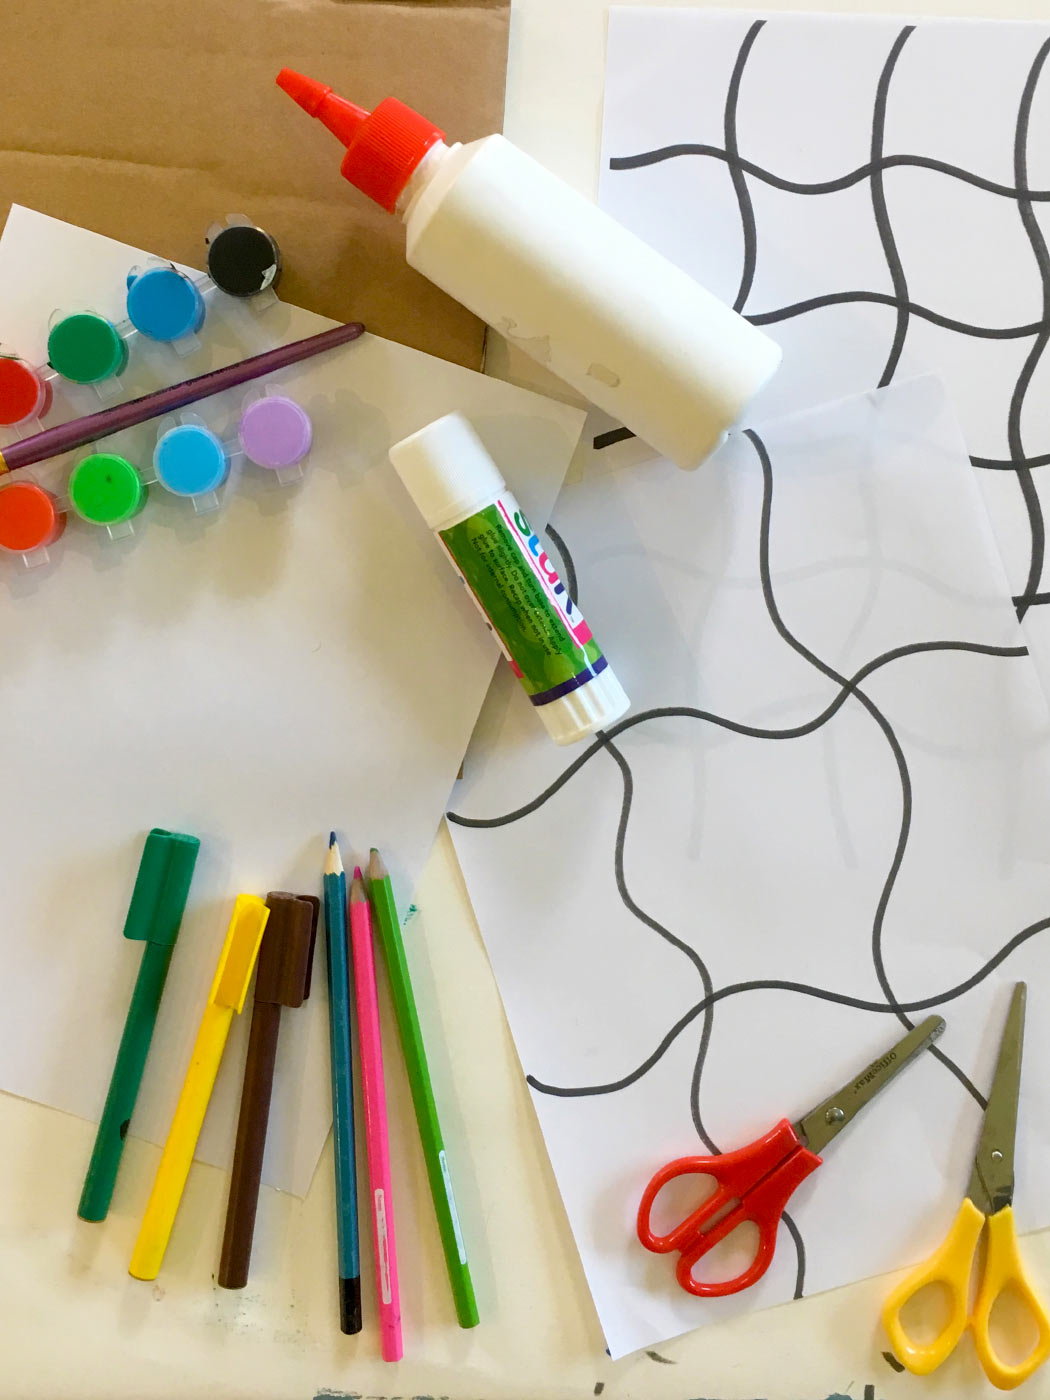 Craft materials including pencils, textas, paints, glue, scissors and a puzzle template.